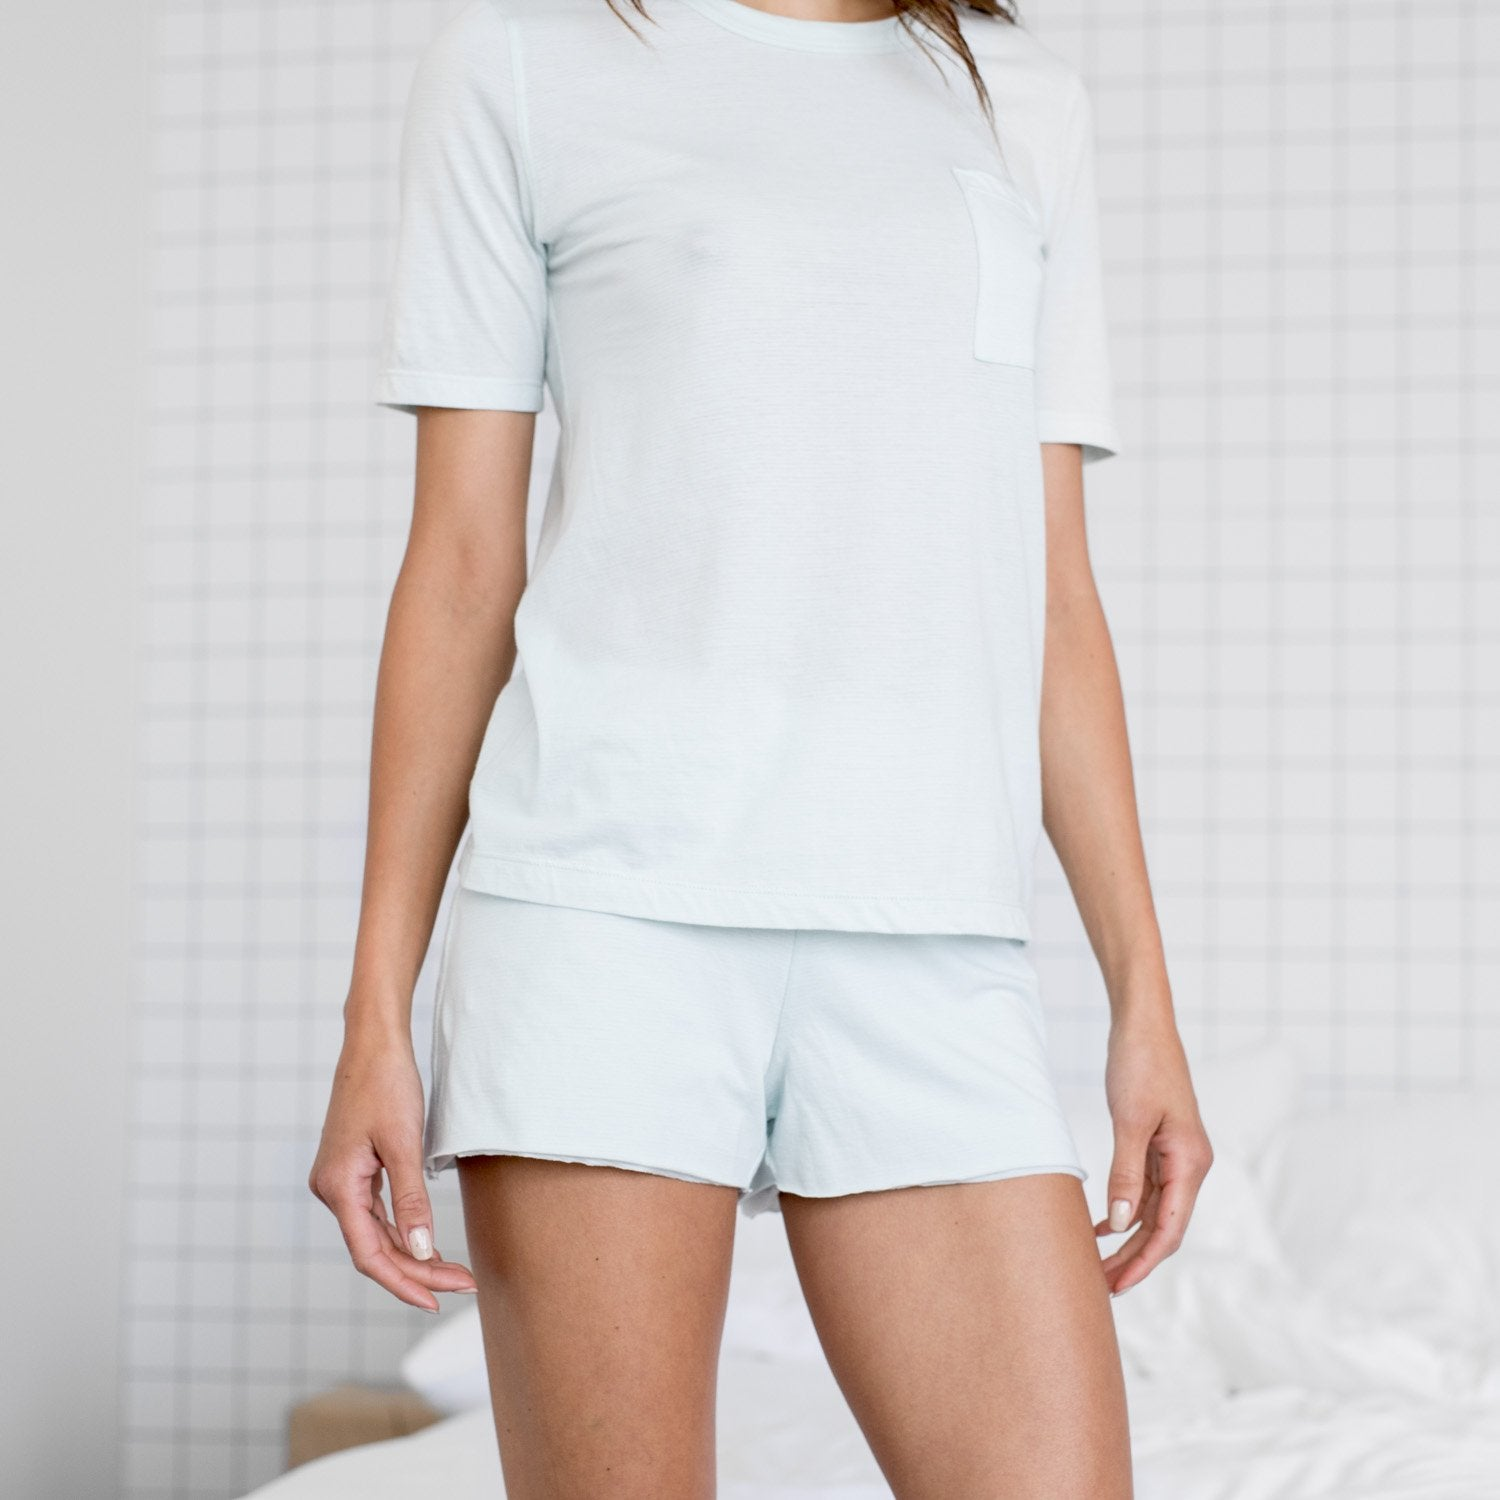 Lunya Sleepwear Cool Short - #Brisk